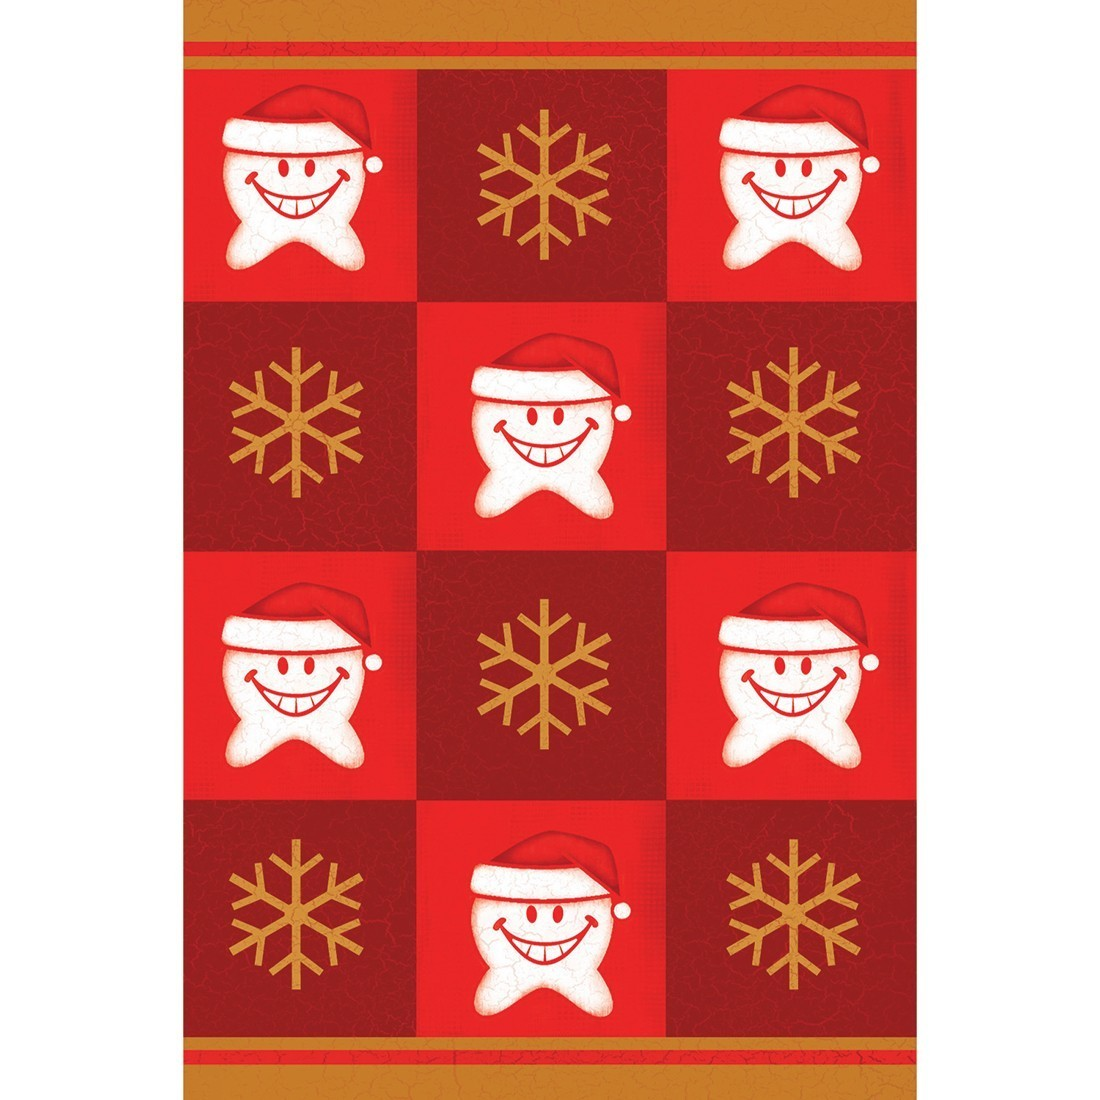 Scatter Tooth and Snowflake Greeting Cards [image]